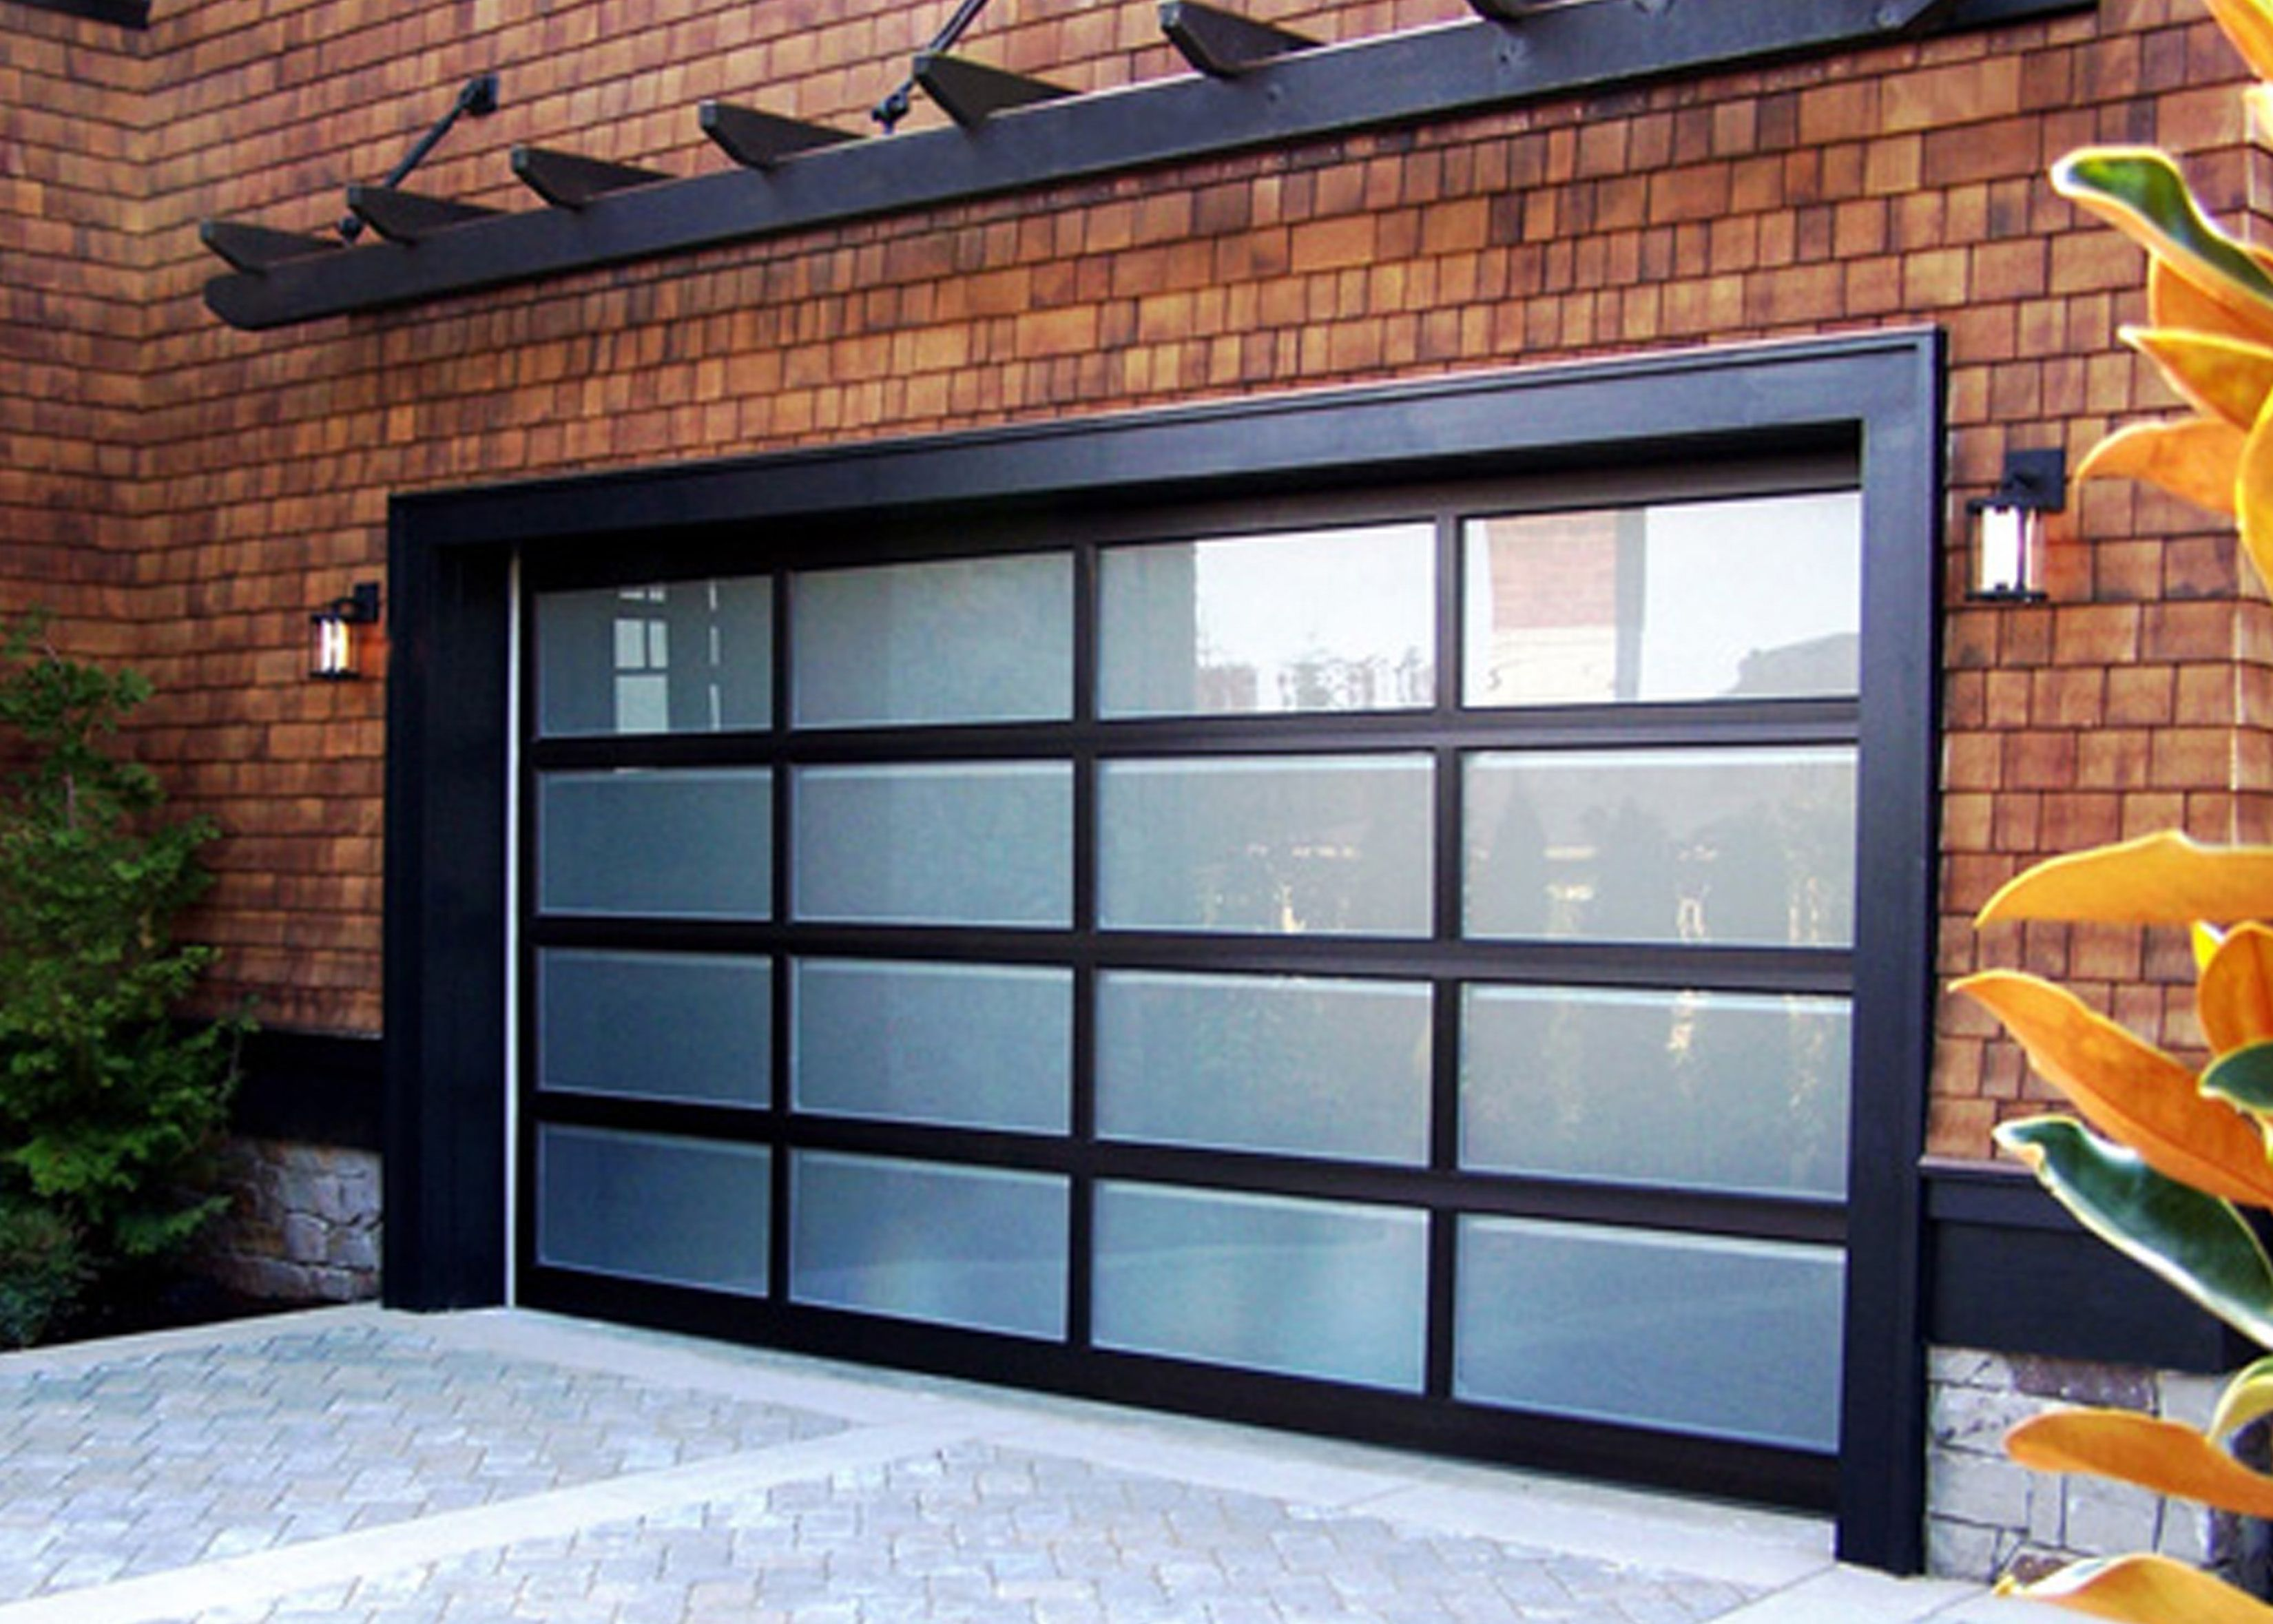 Exciting Amarr Garage Doors For Inspiring Large Door Ideas Appealing Amarr Garage Doors With Wood Siding Garage Doors Garage Door Sizes Garage Doors For Sale